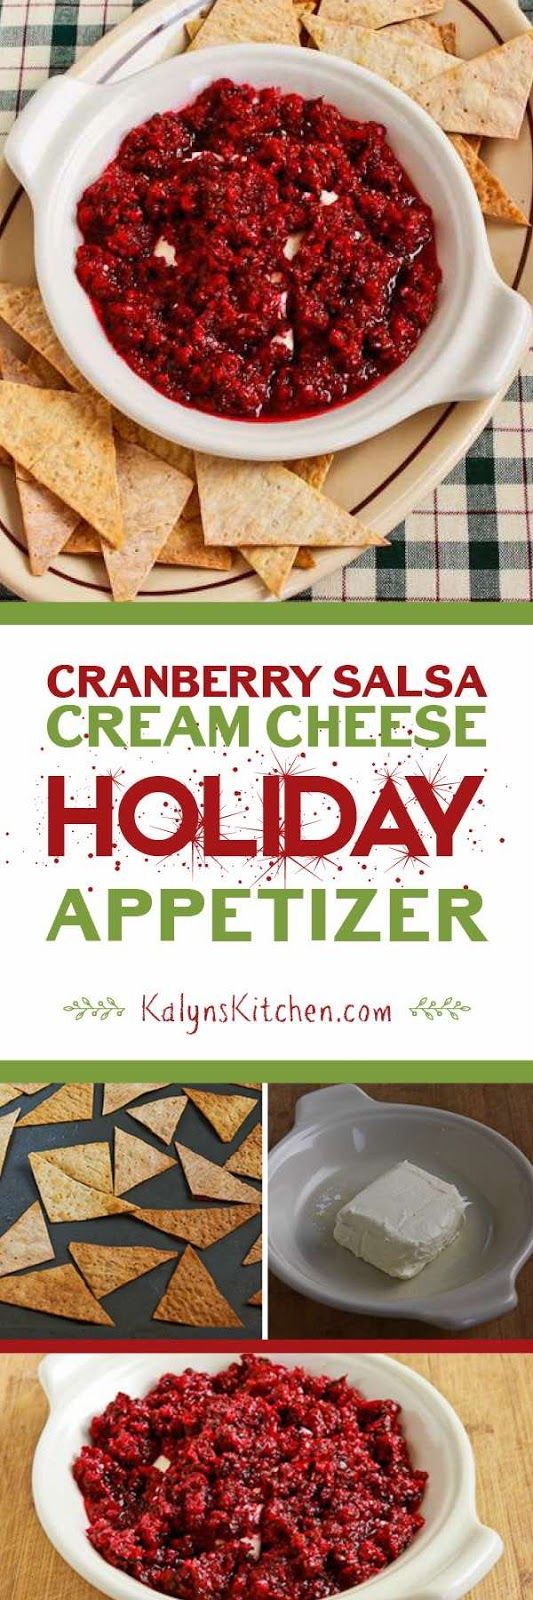 25+ best ideas about Cranberry salsa on Pinterest